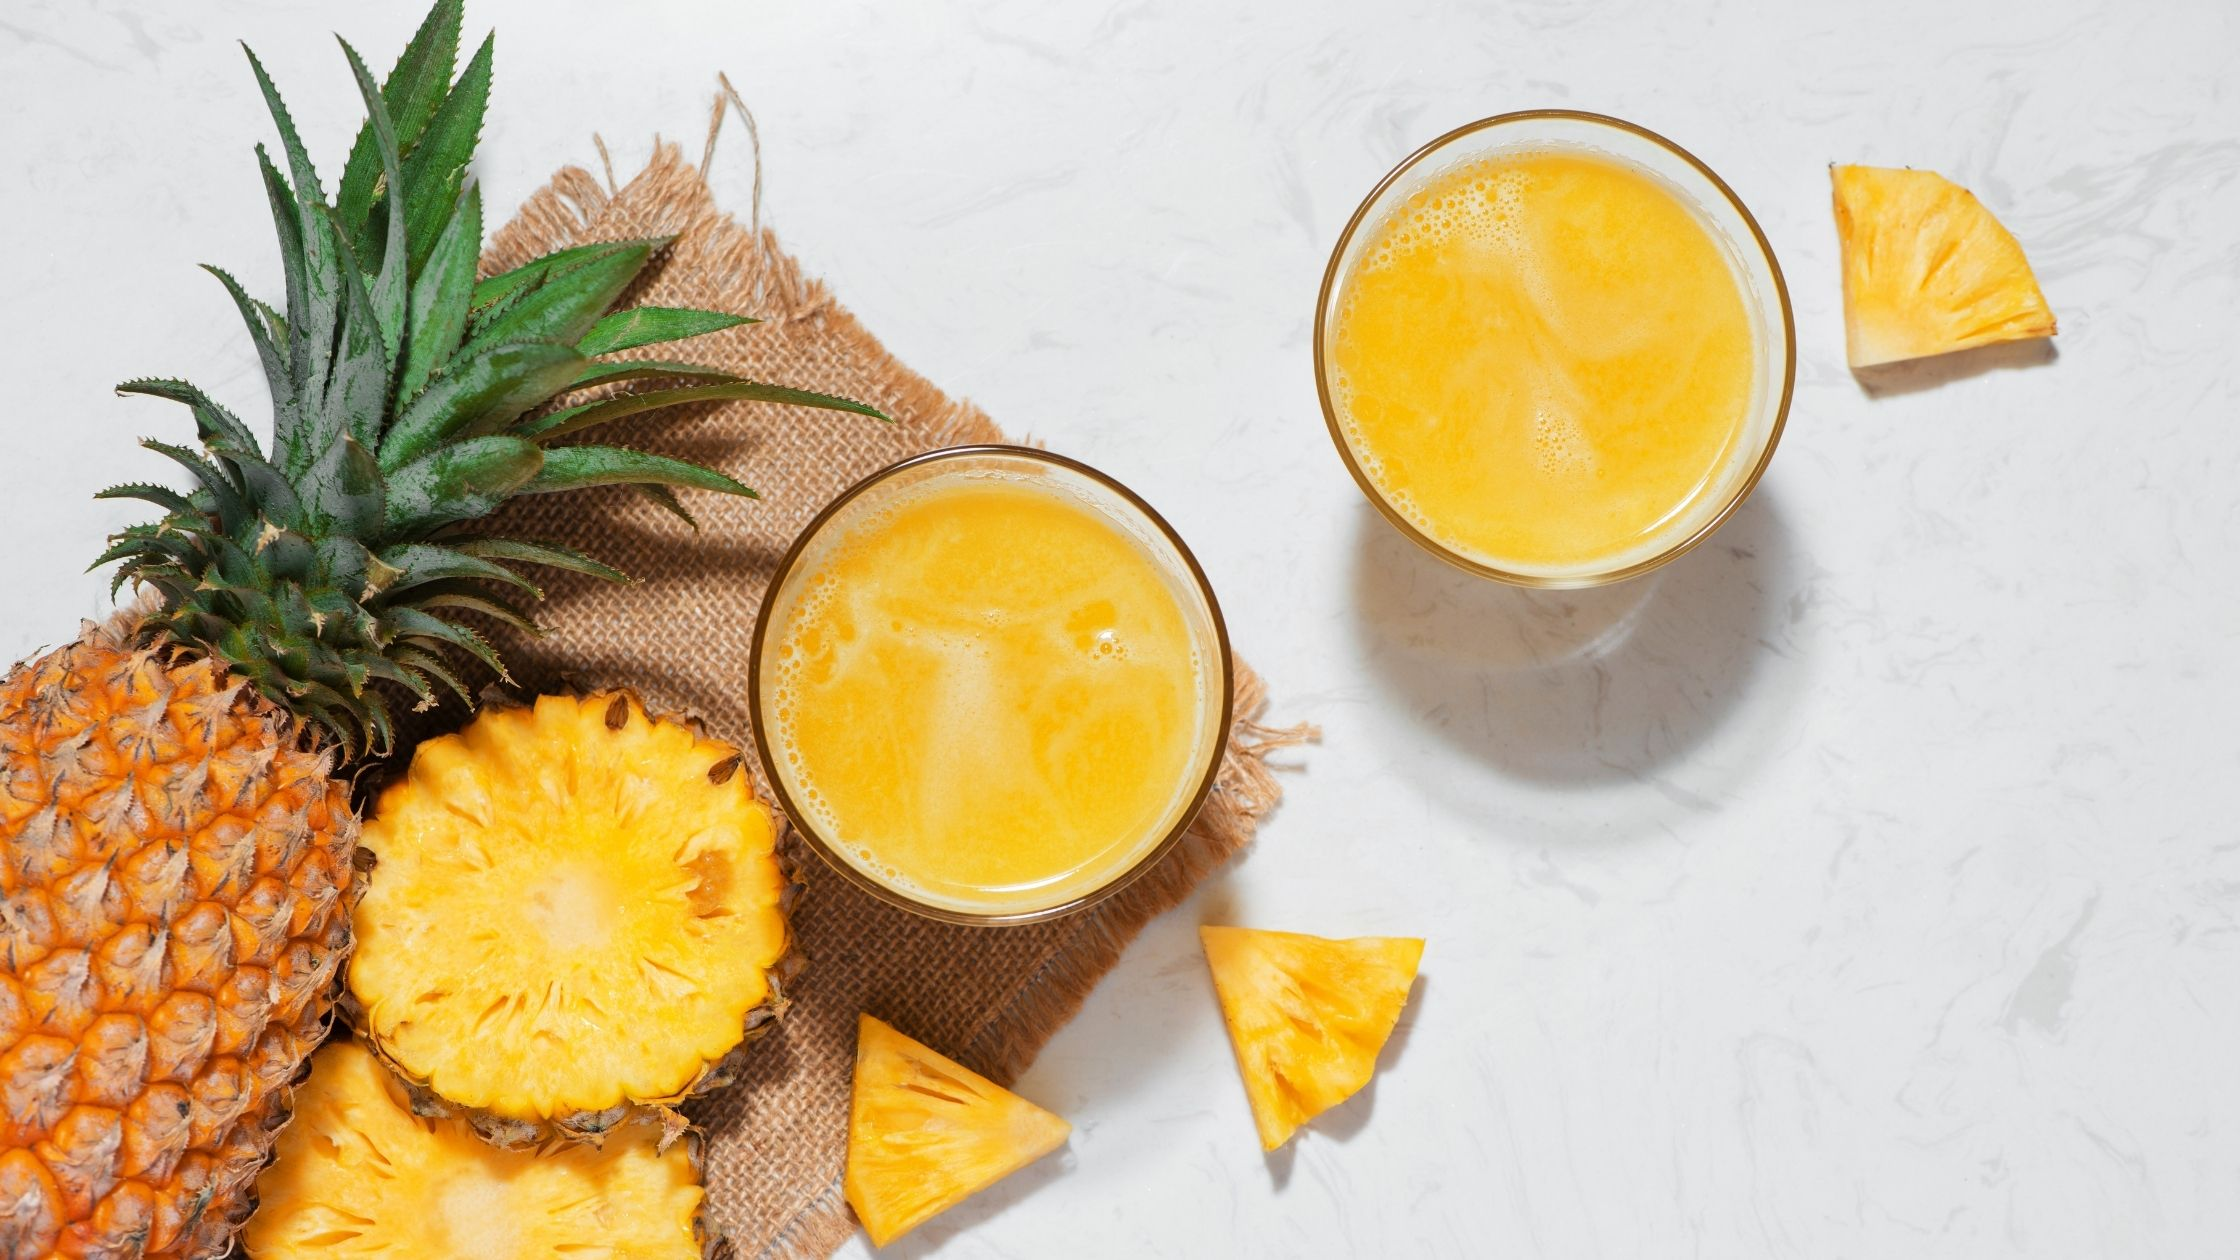 Can You Eat Pineapple On Keto Diet?